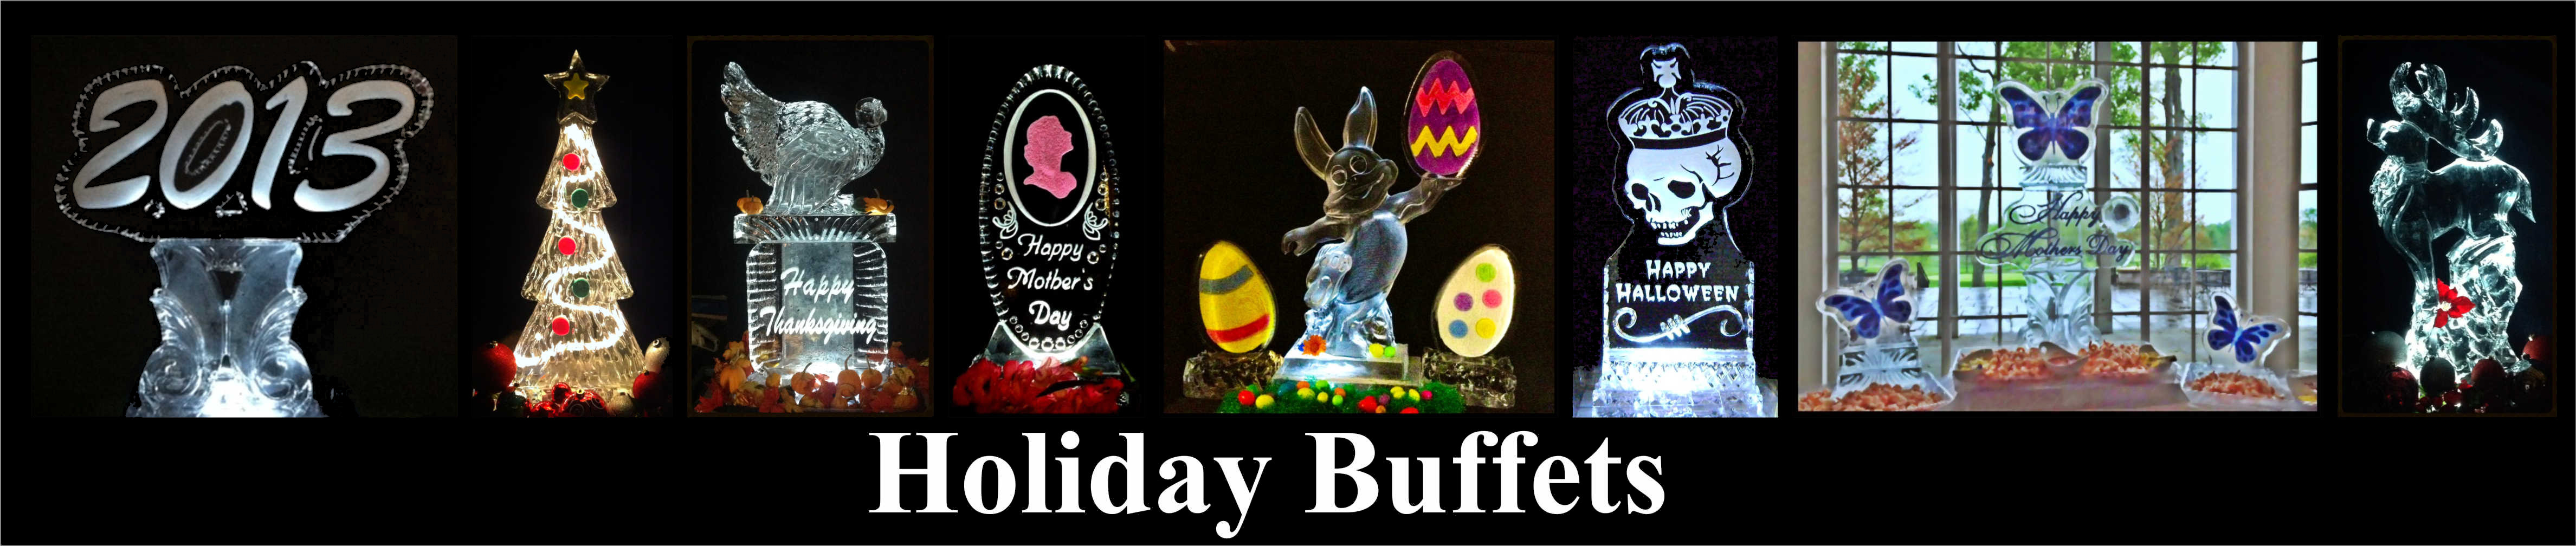 Holiday Buffets